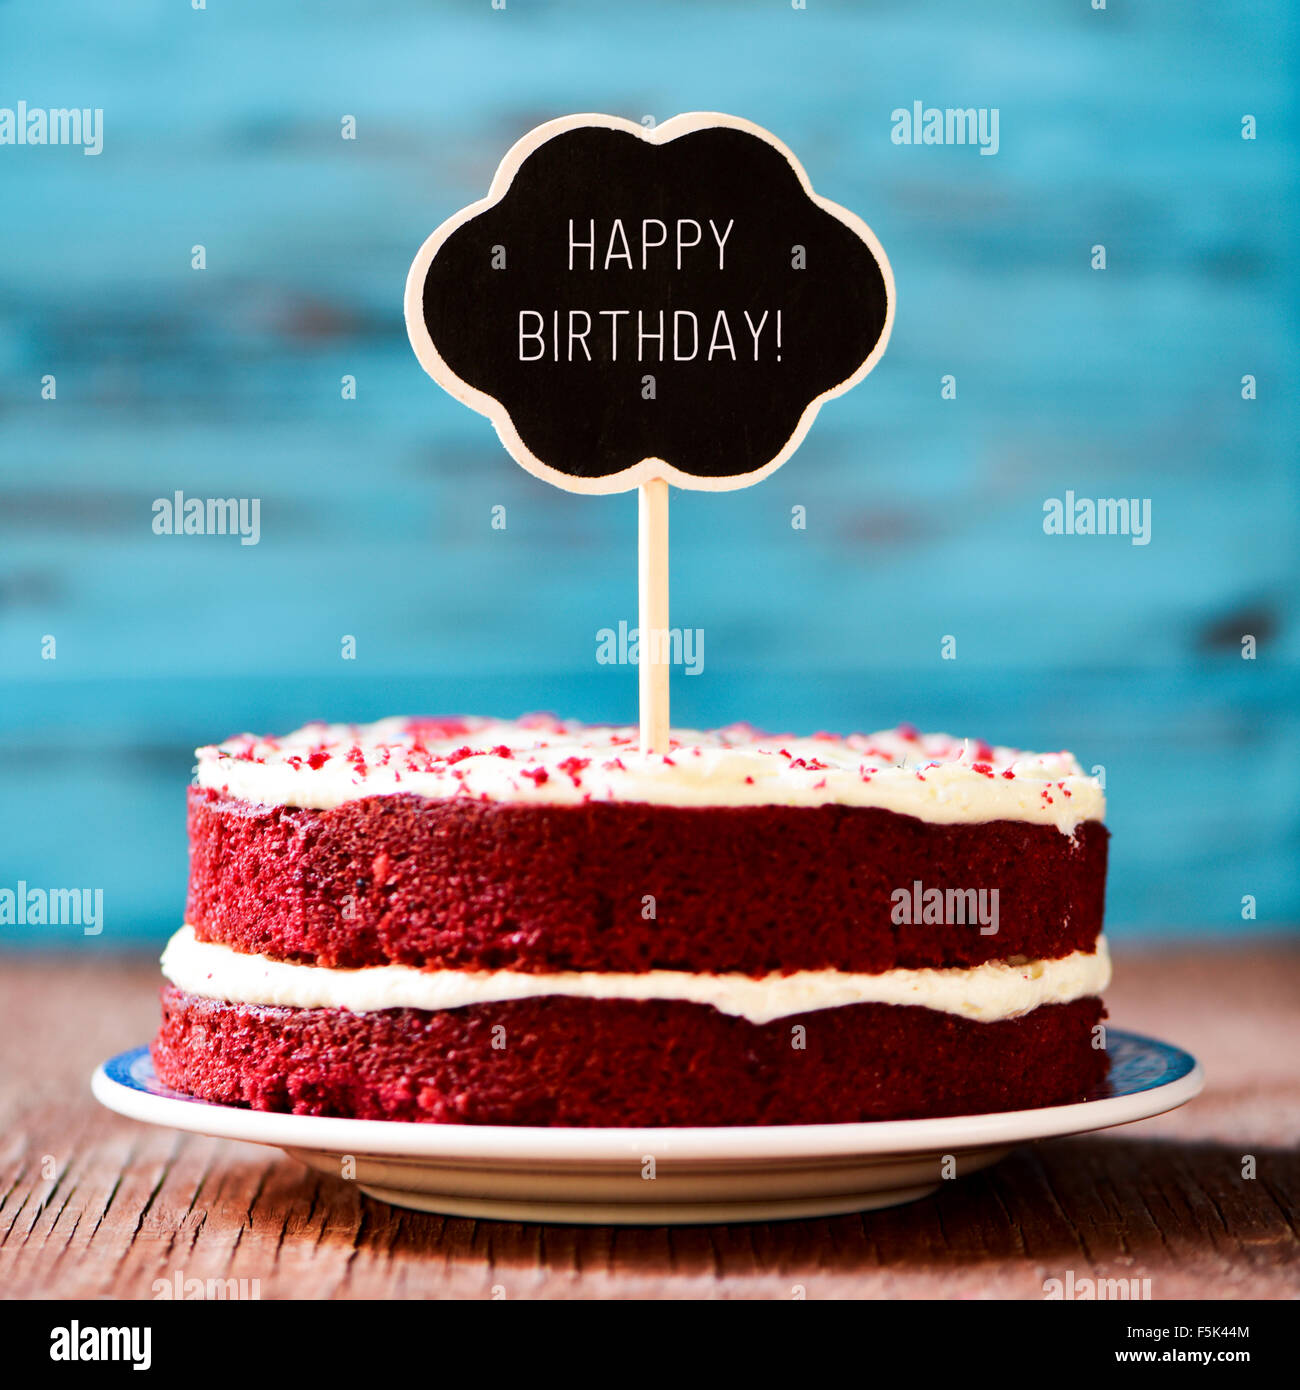 A Red Velvet Cake With Chalkboard In The Shape Of Thought Bubble Text Happy Birthday On Rustic Wooden Table